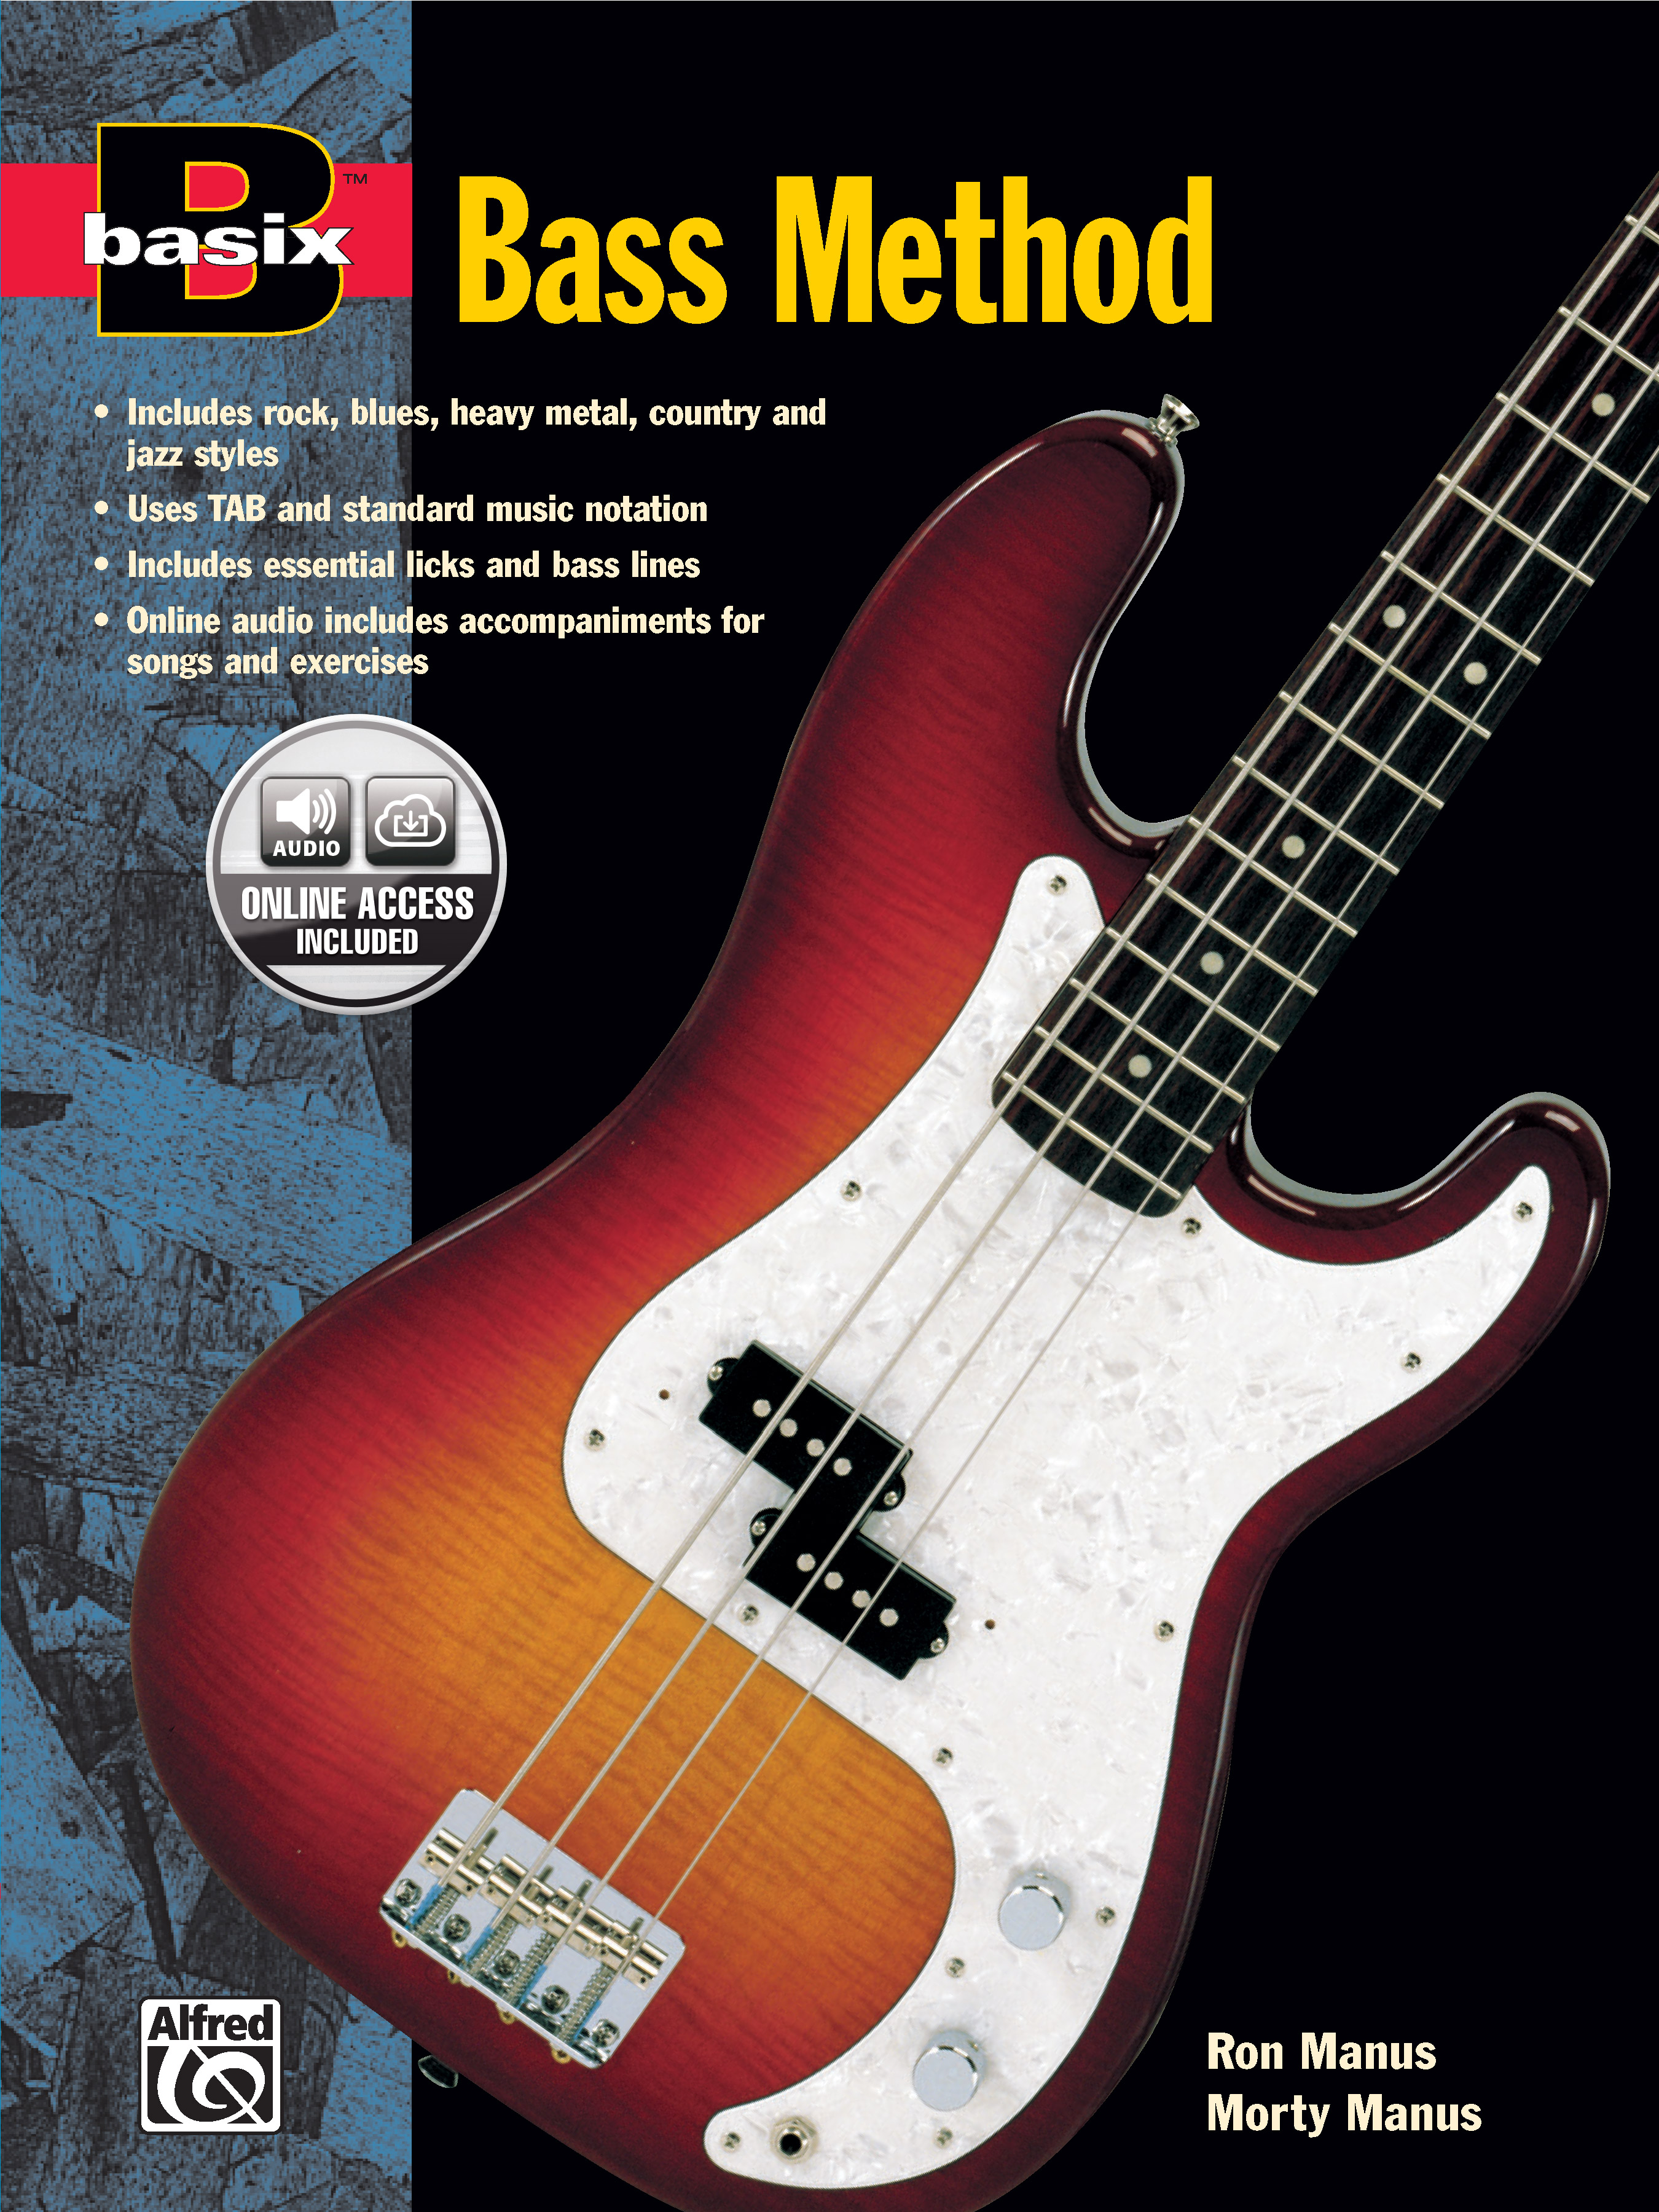 Basix : Bass Method